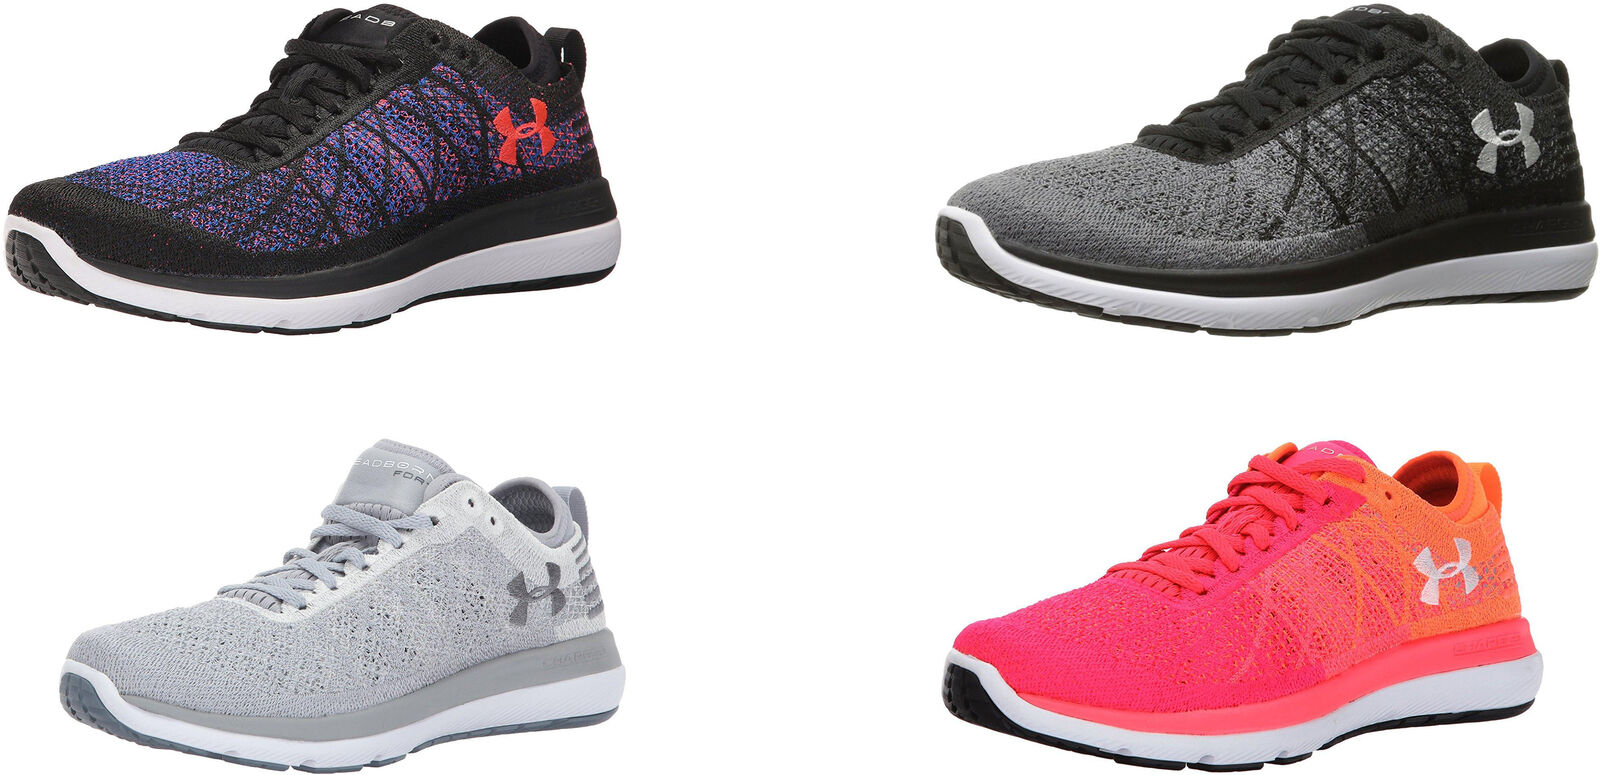 Under Armour Women's Threadborne Fortis 3 Shoes, 4 Colors